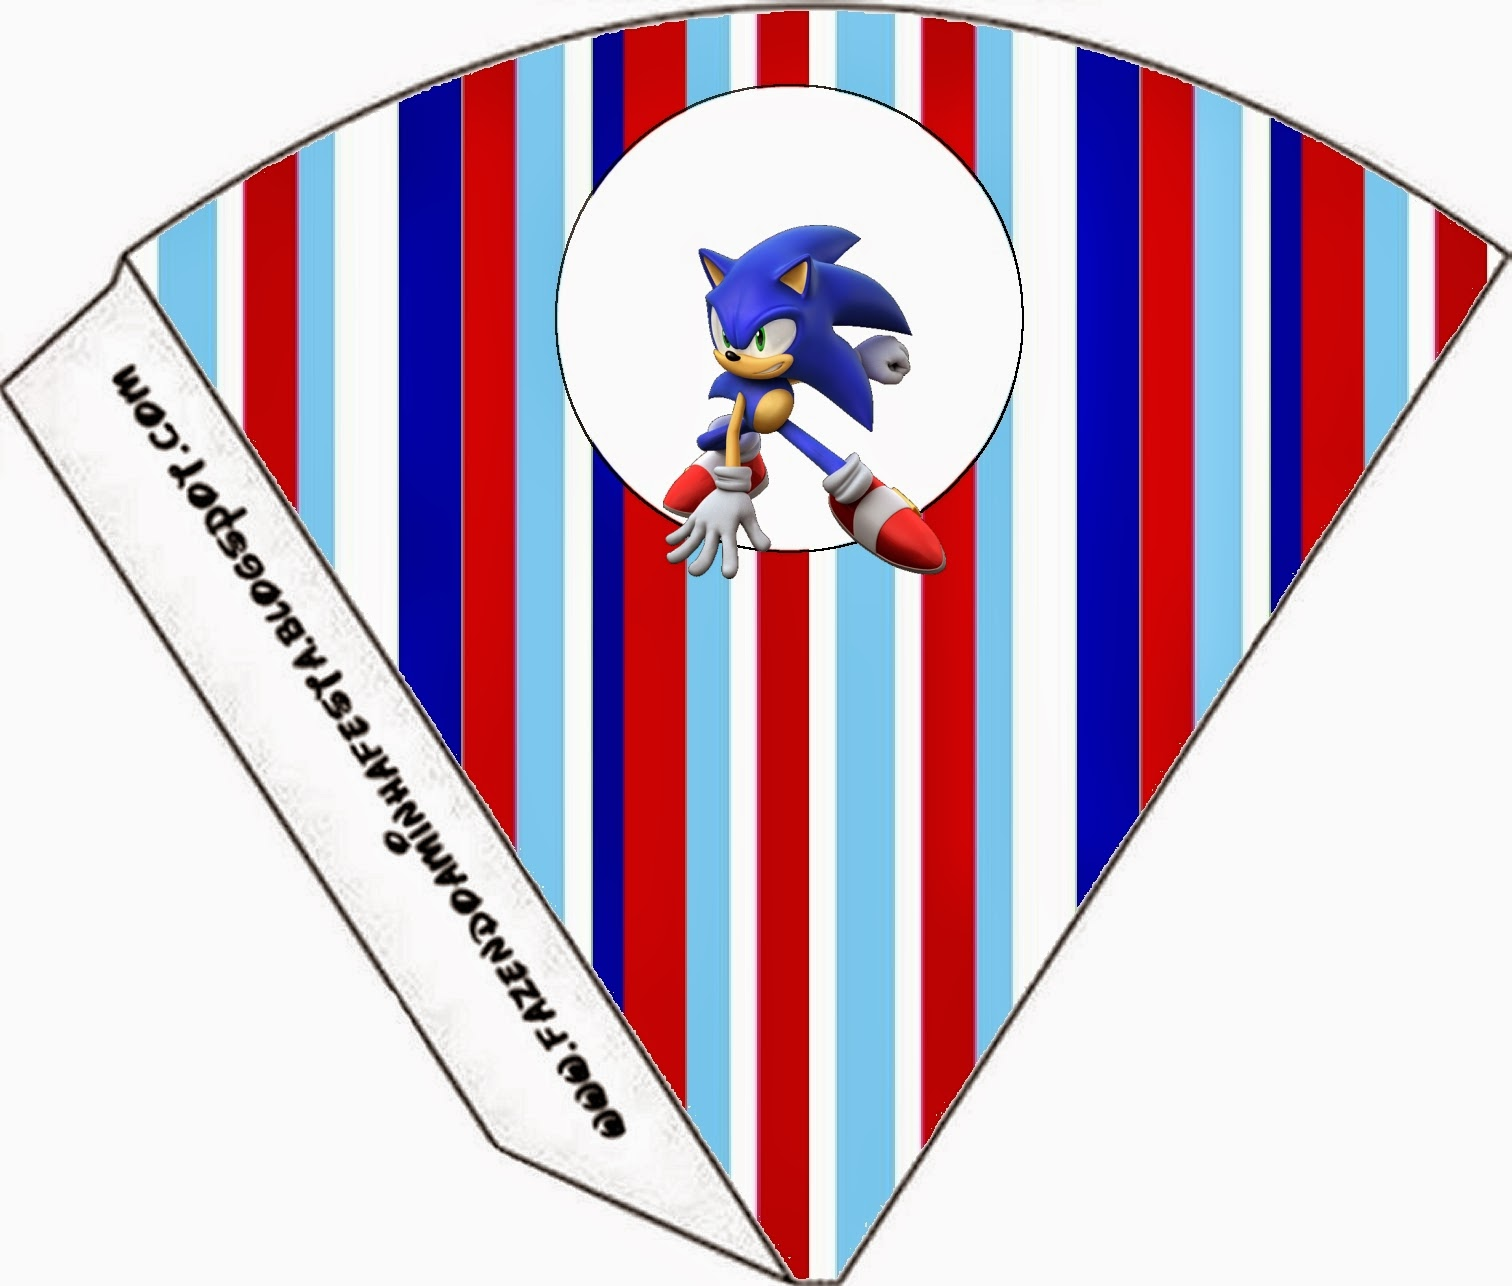 Sonic: Free Party Printables. - Oh My Fiesta! for Geeks